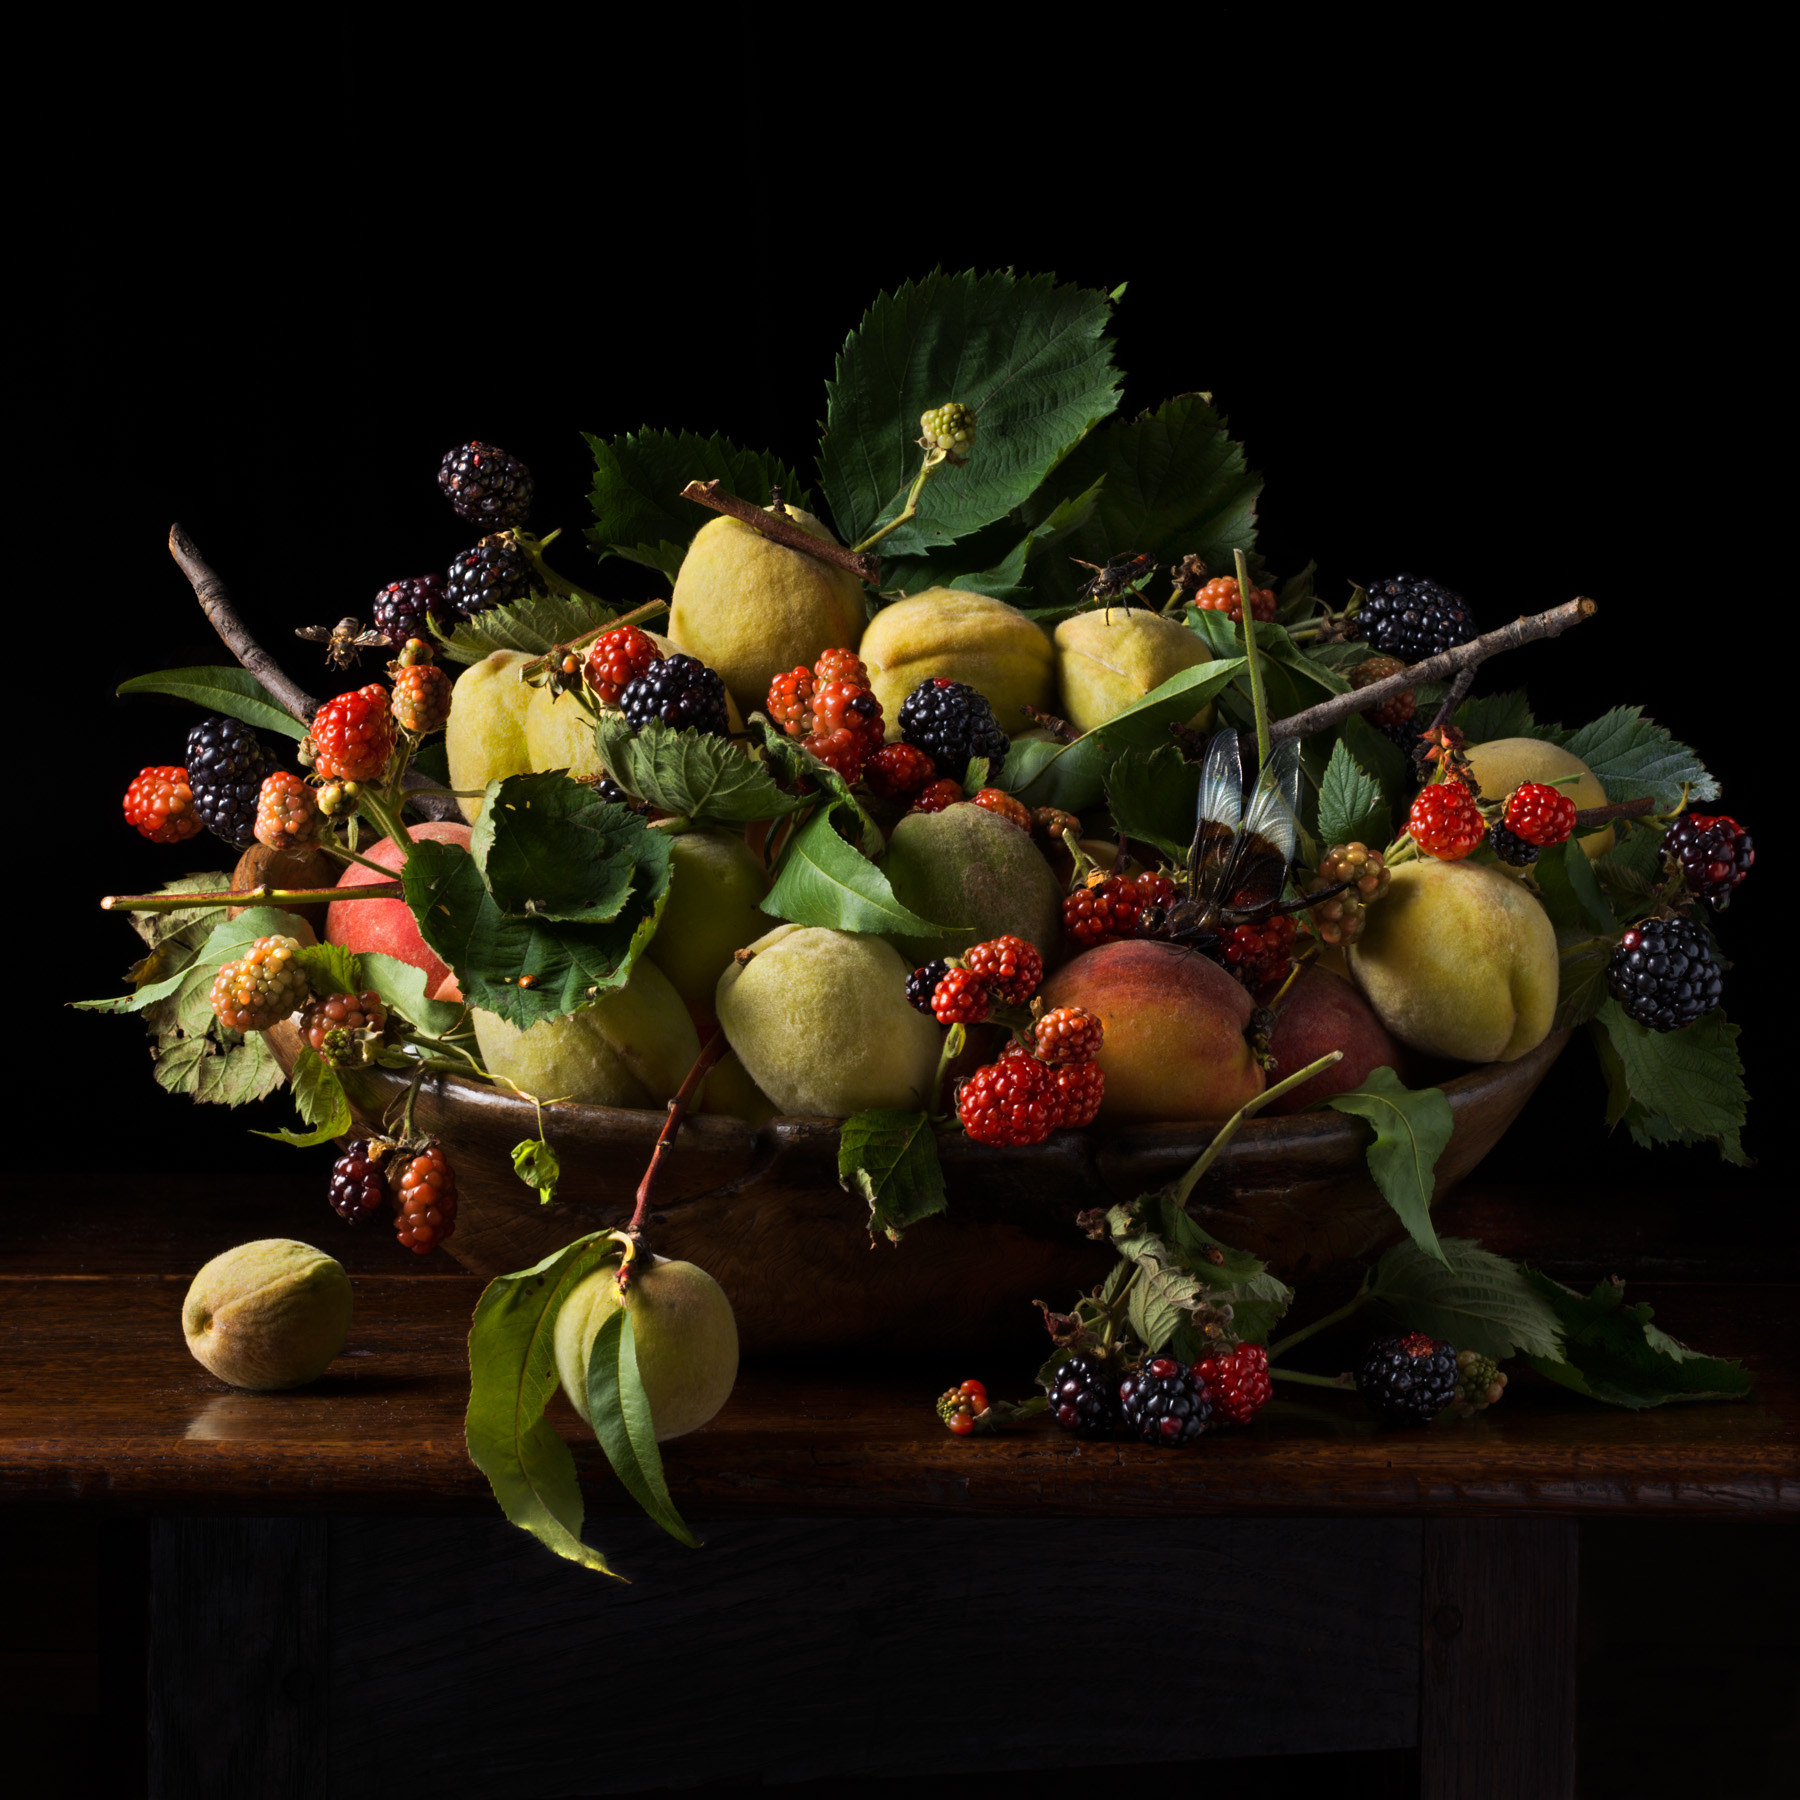 Blackberries and Peaches, After G.G., 2013